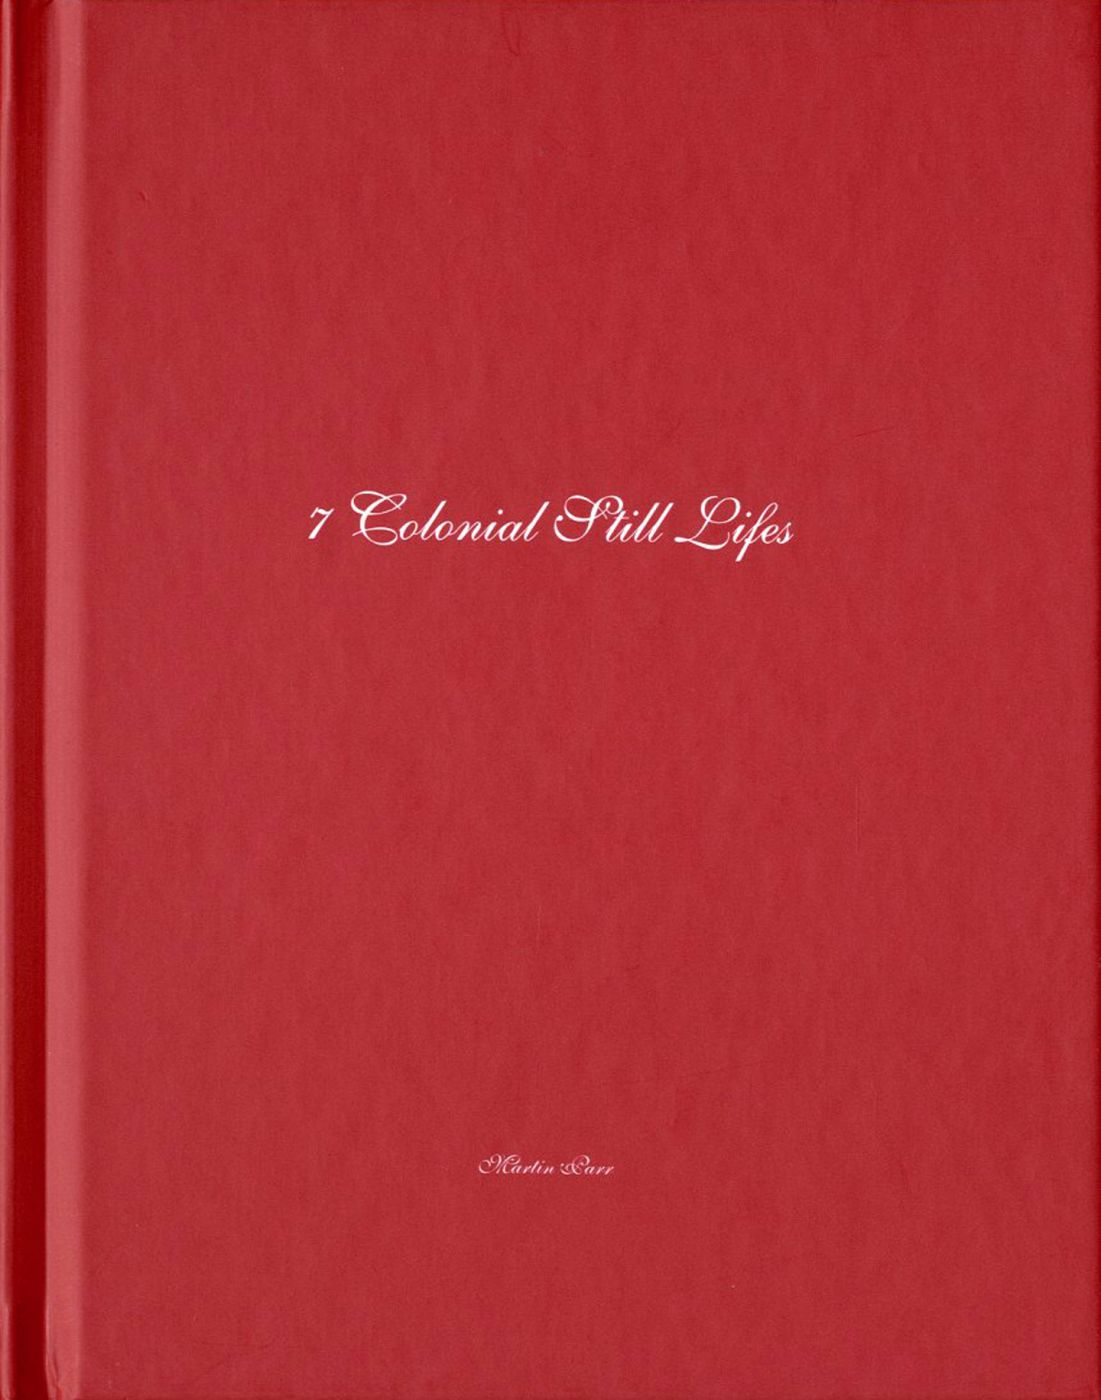 Martin Parr: Seven (7) Colonial Still Lifes (One Picture Book #28), Limited Edition (with Print)